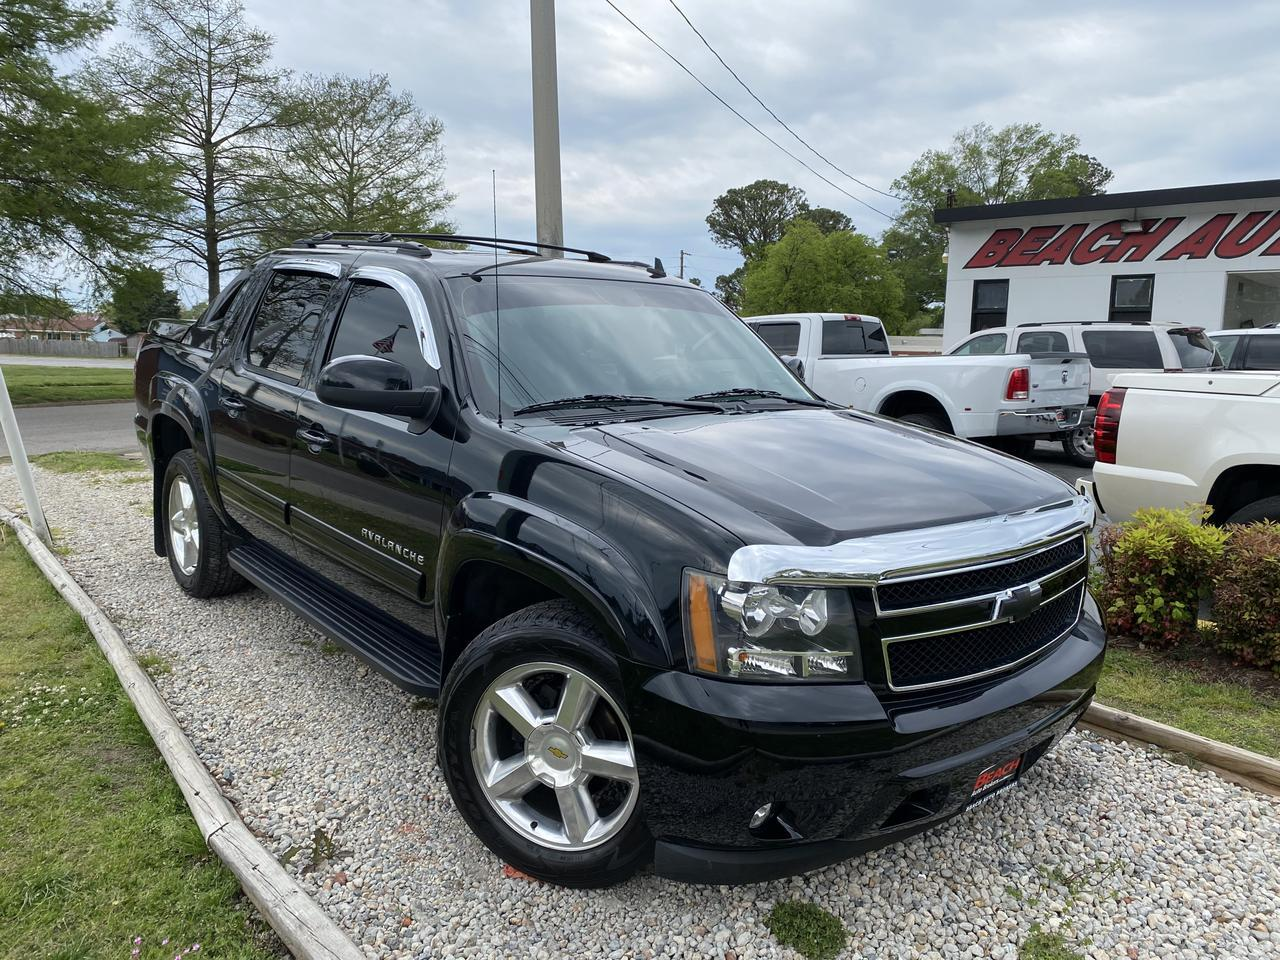 2011 CHEVROLET AVALANCHE LT CREW CAB 4X4, WARRANTY, LEATHER, HEATED SEATS, SUNROOF, BACKUP CAM, CLEAN CARFAX! Norfolk VA